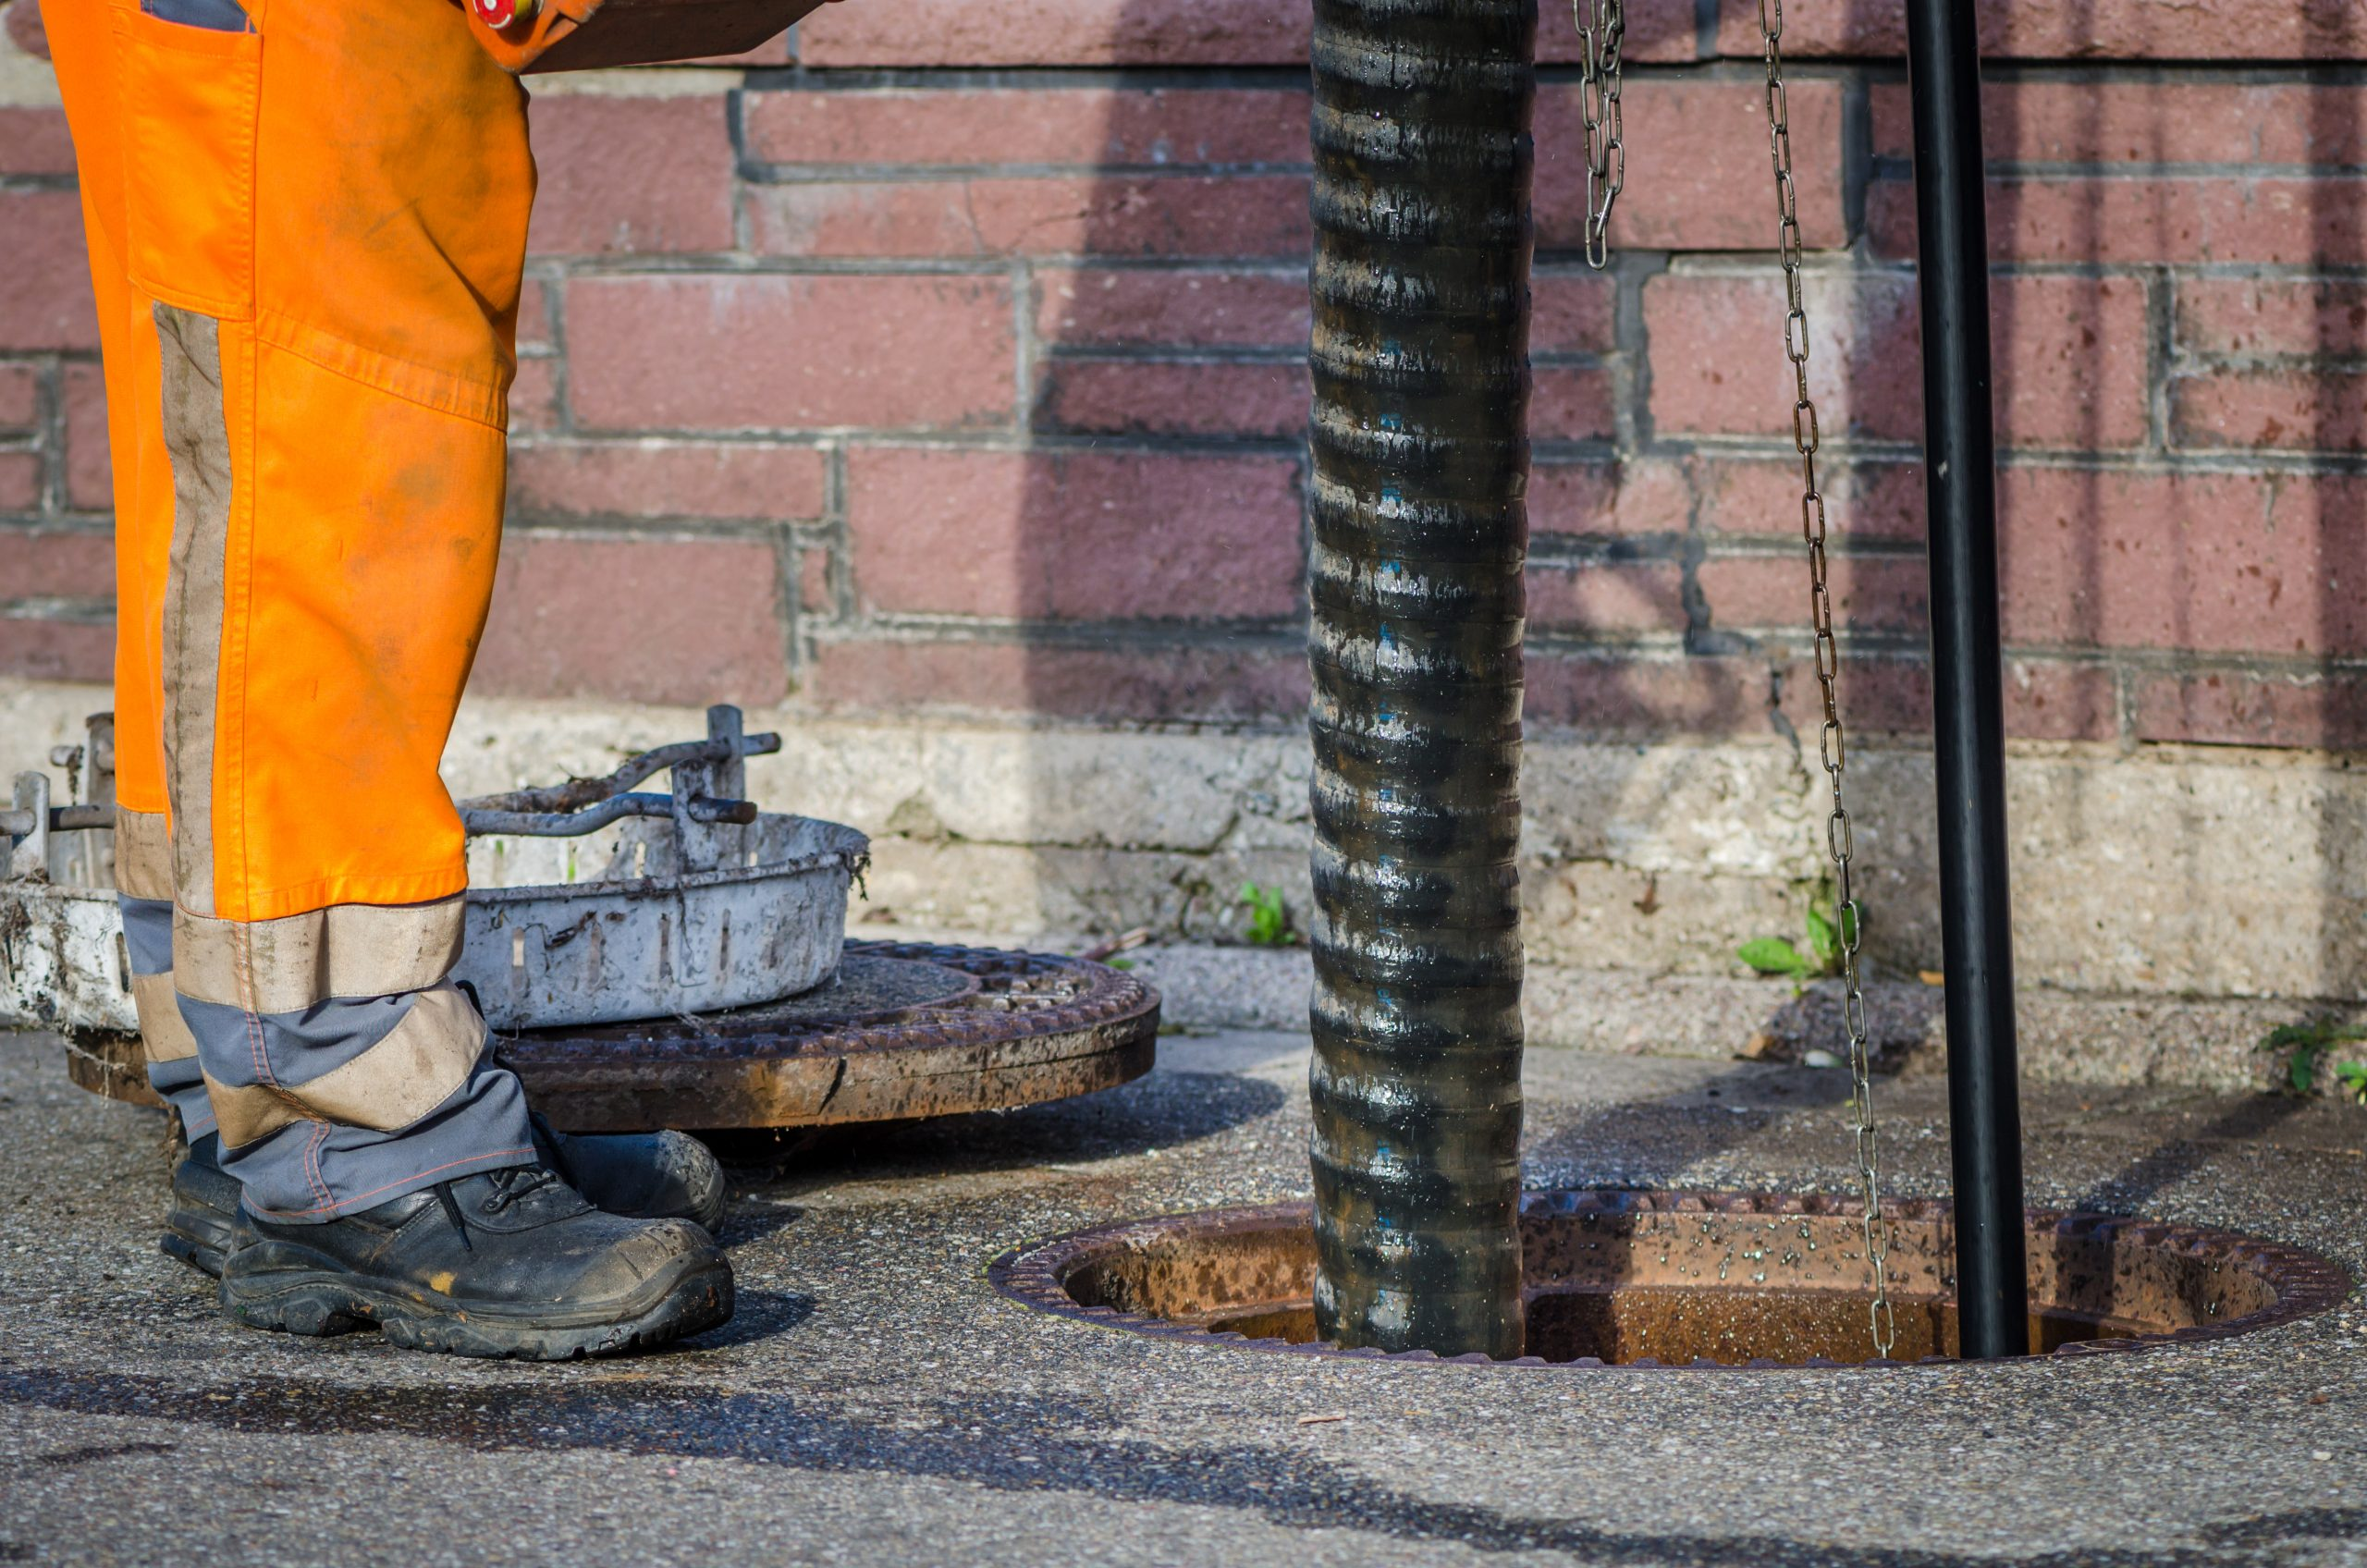 sewerage worker on street cleaning pipe